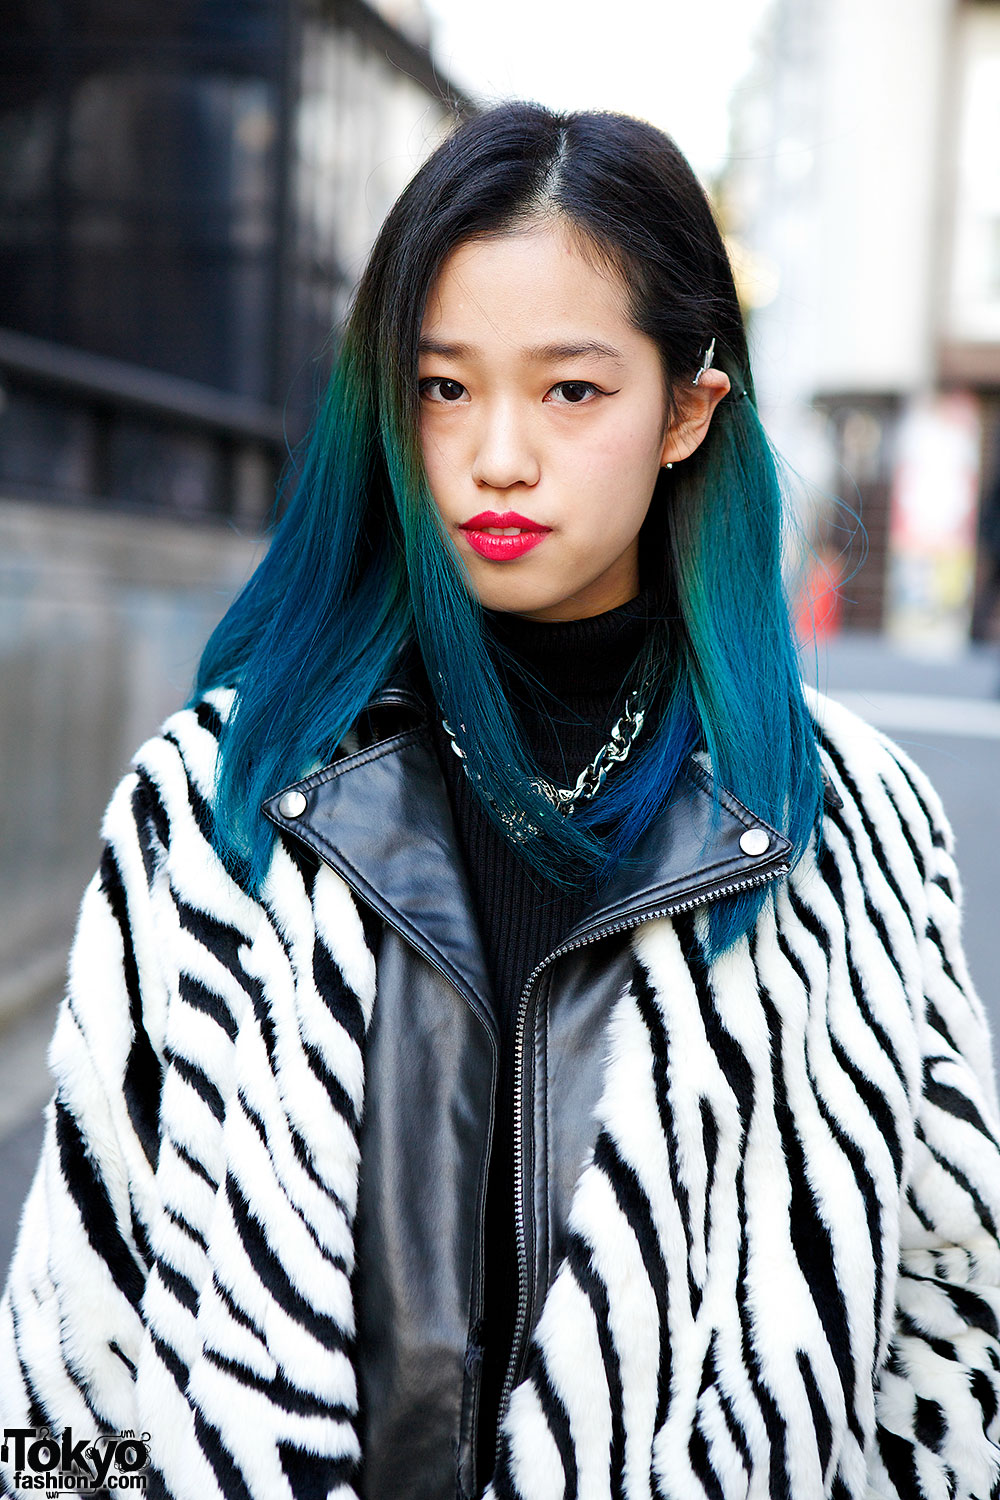 blue ombre hair zebra print jacket clutch ripped jeans in harajuku. Black Bedroom Furniture Sets. Home Design Ideas